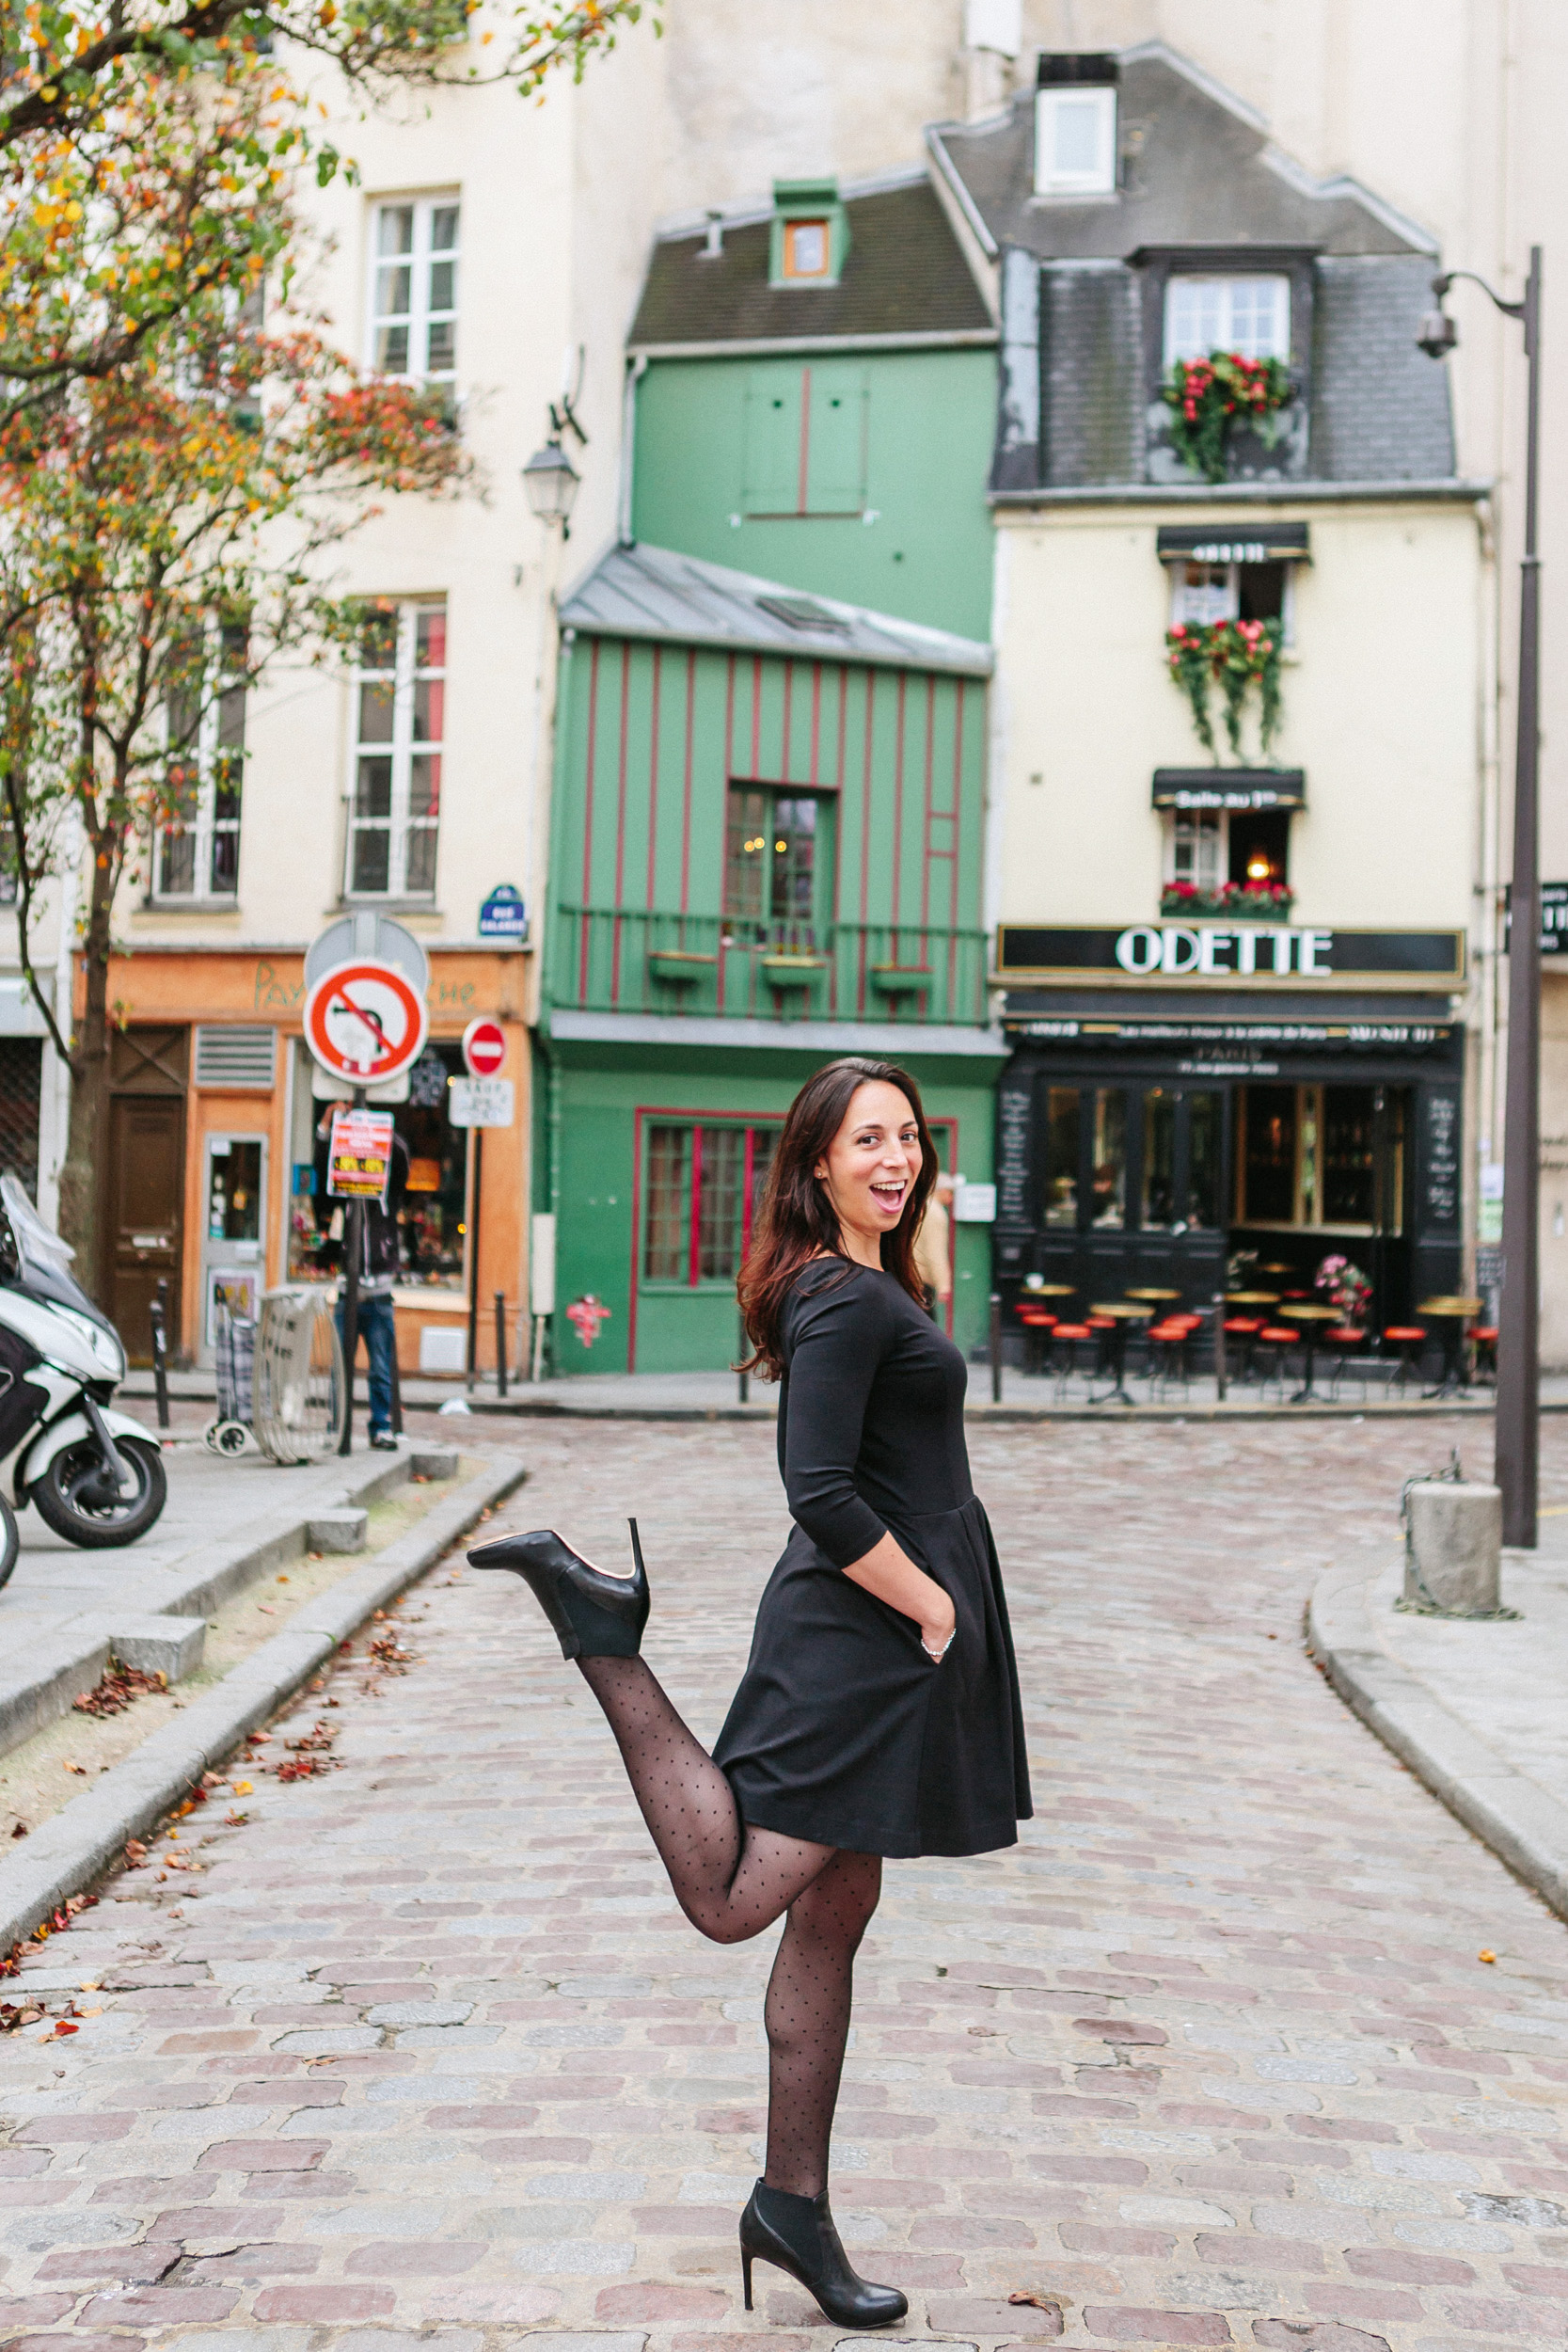 Portrait of Rebecca Plotnick founder of Every Day Parisian blog in front of Cafe Odette captured by Paris Photographer Federico and Anastasia Guendel IheartParisFr TheFlyingPoodle